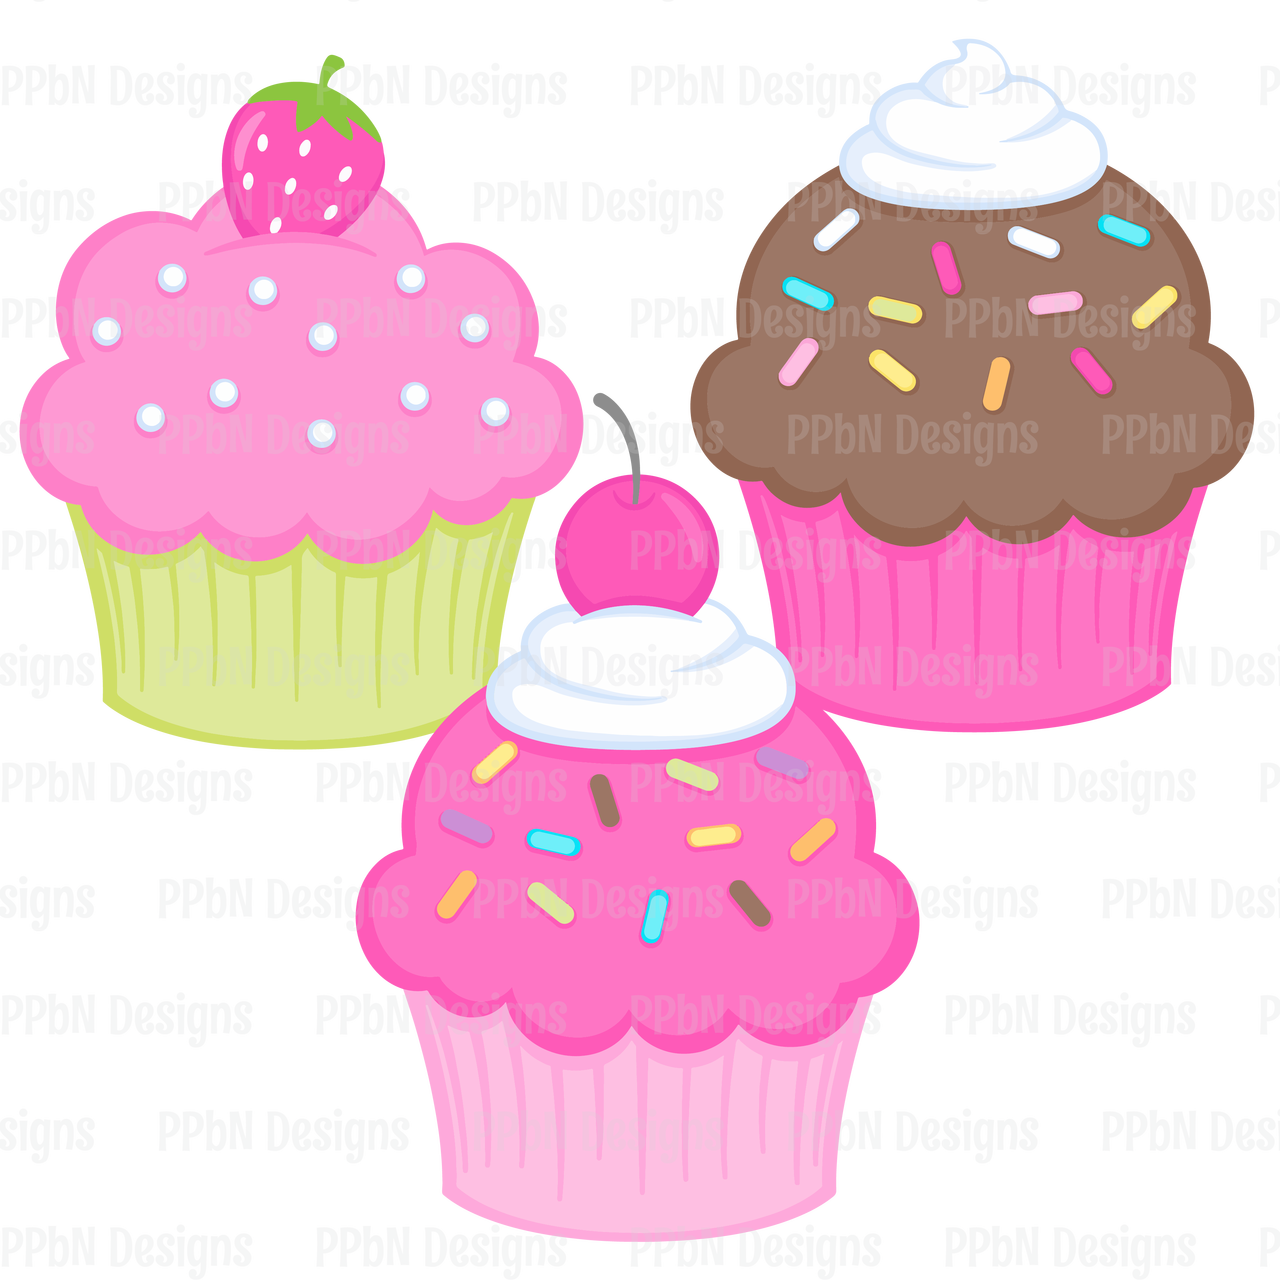 Ppbn designs pixel paper. Clipart cupcake september